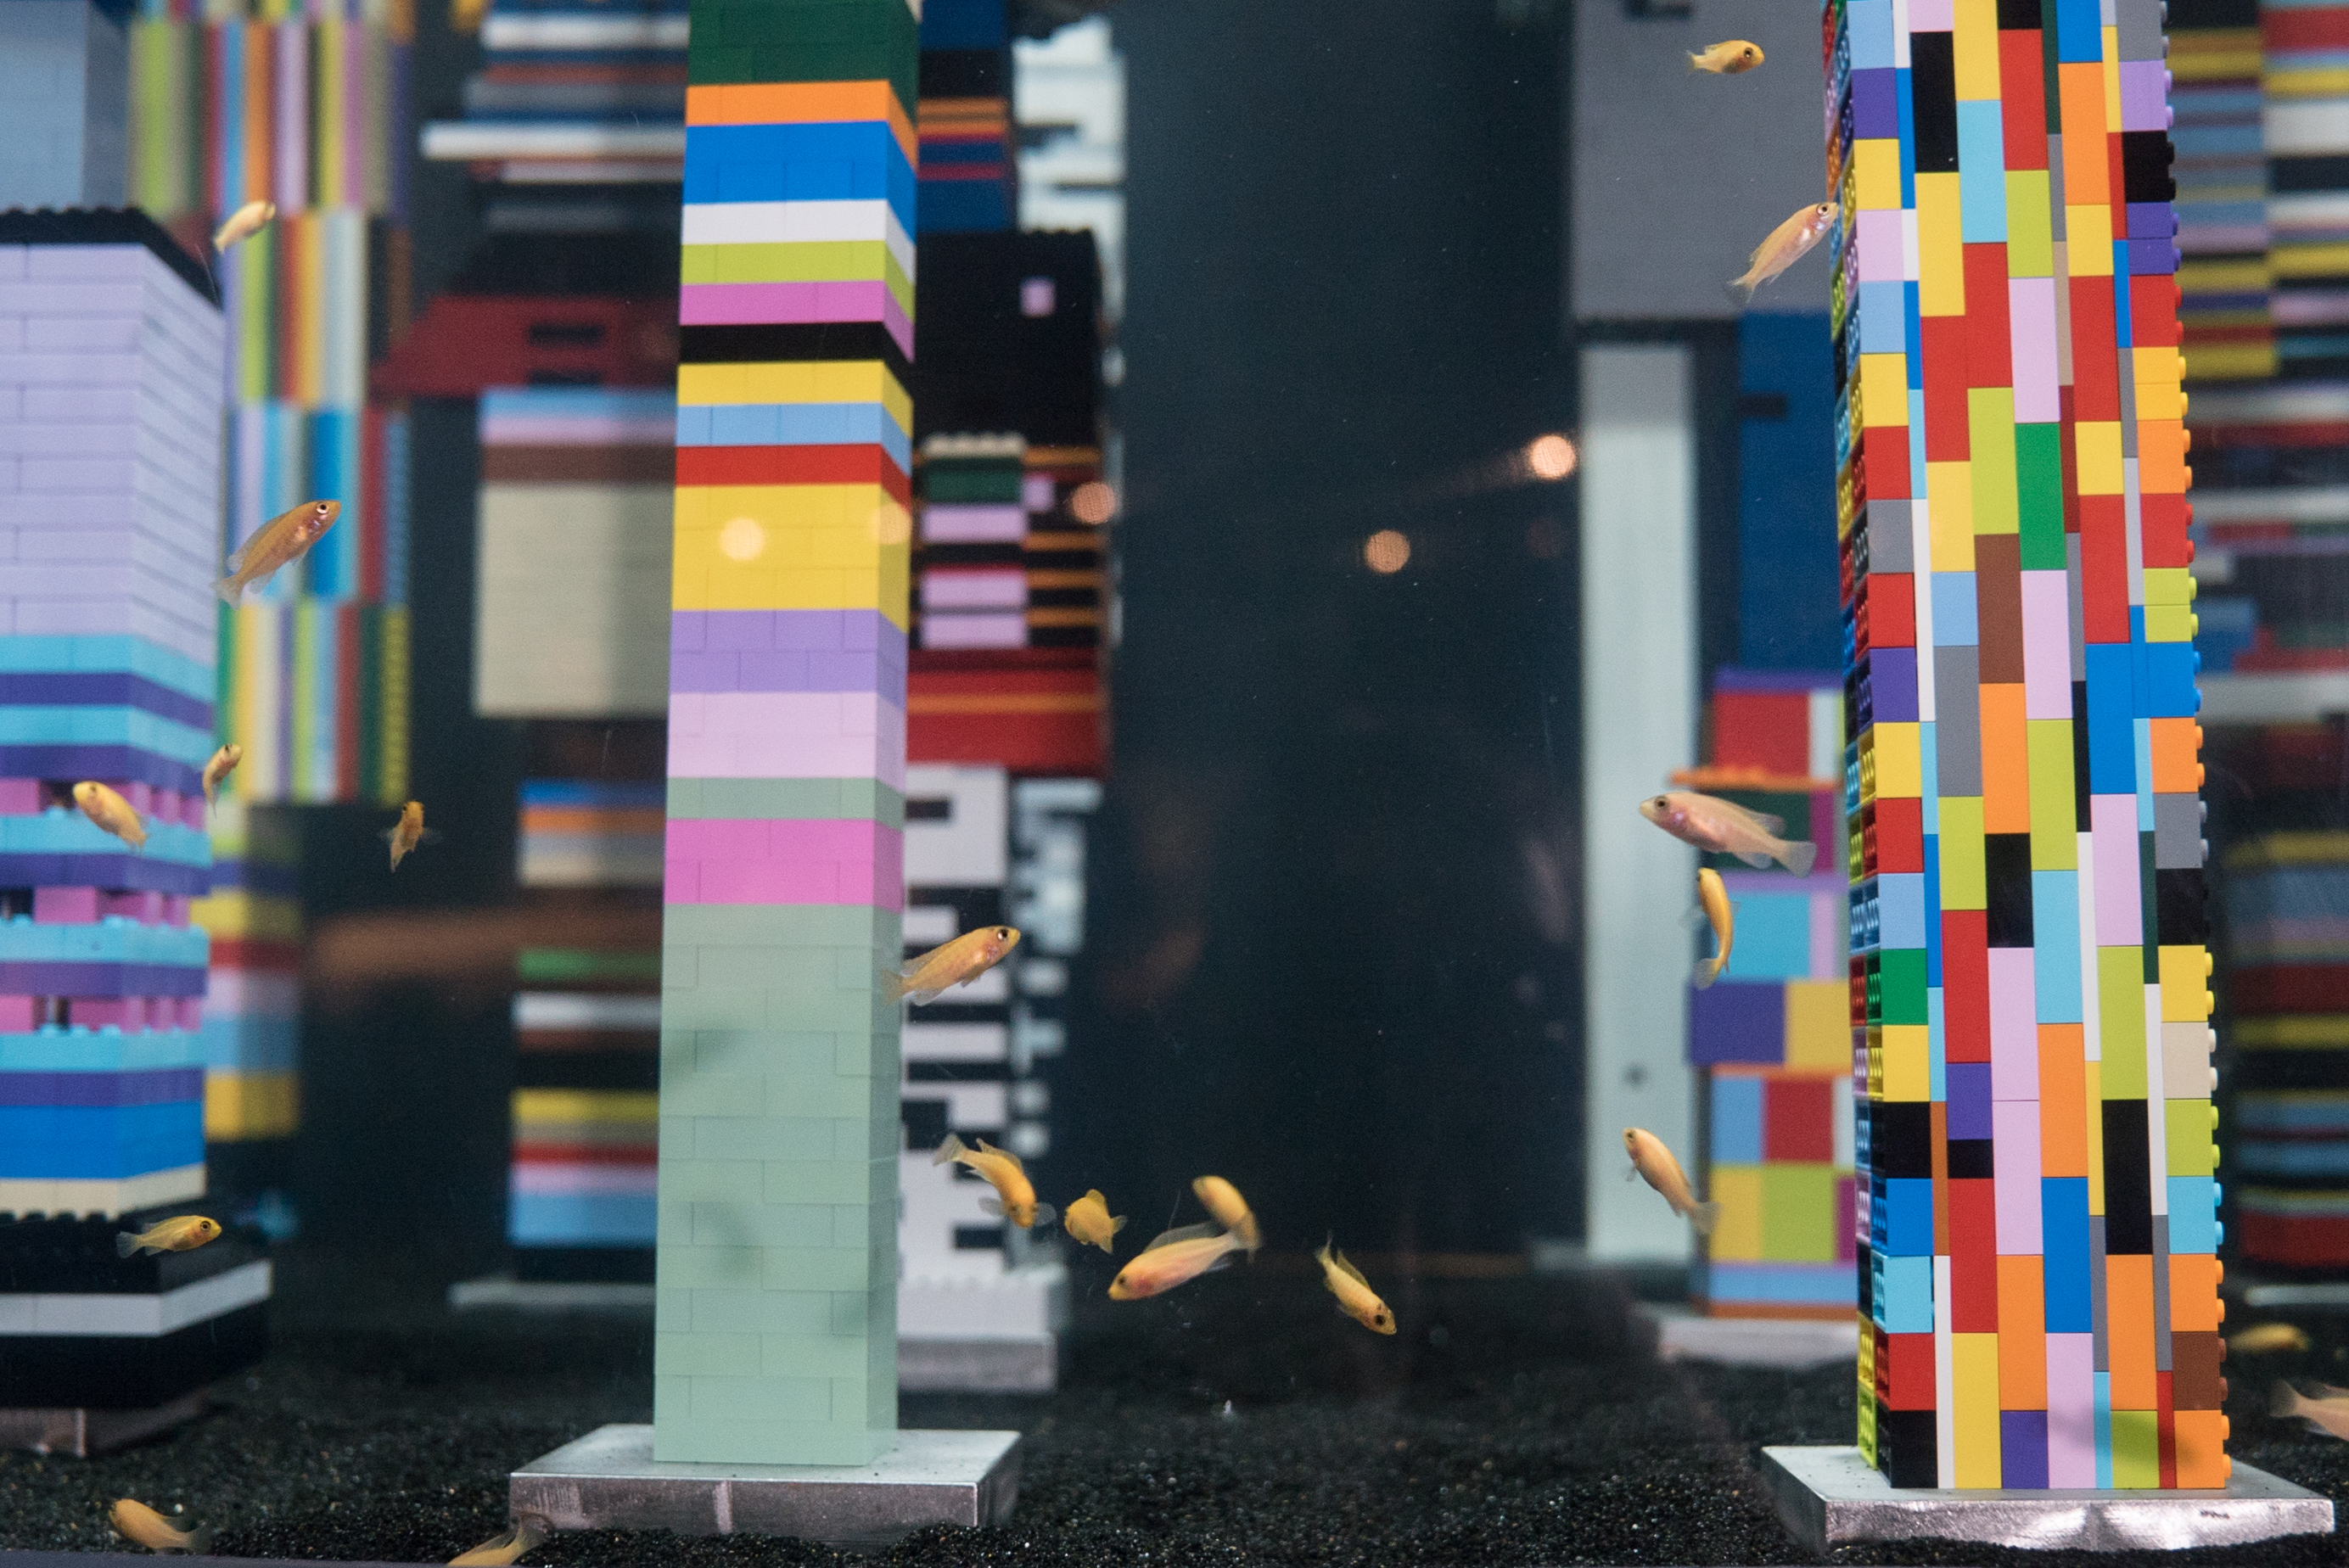 Cichlids swim among towers made of LEGO in Coupland's Vortex exhibit at the Vancouver Aquarium